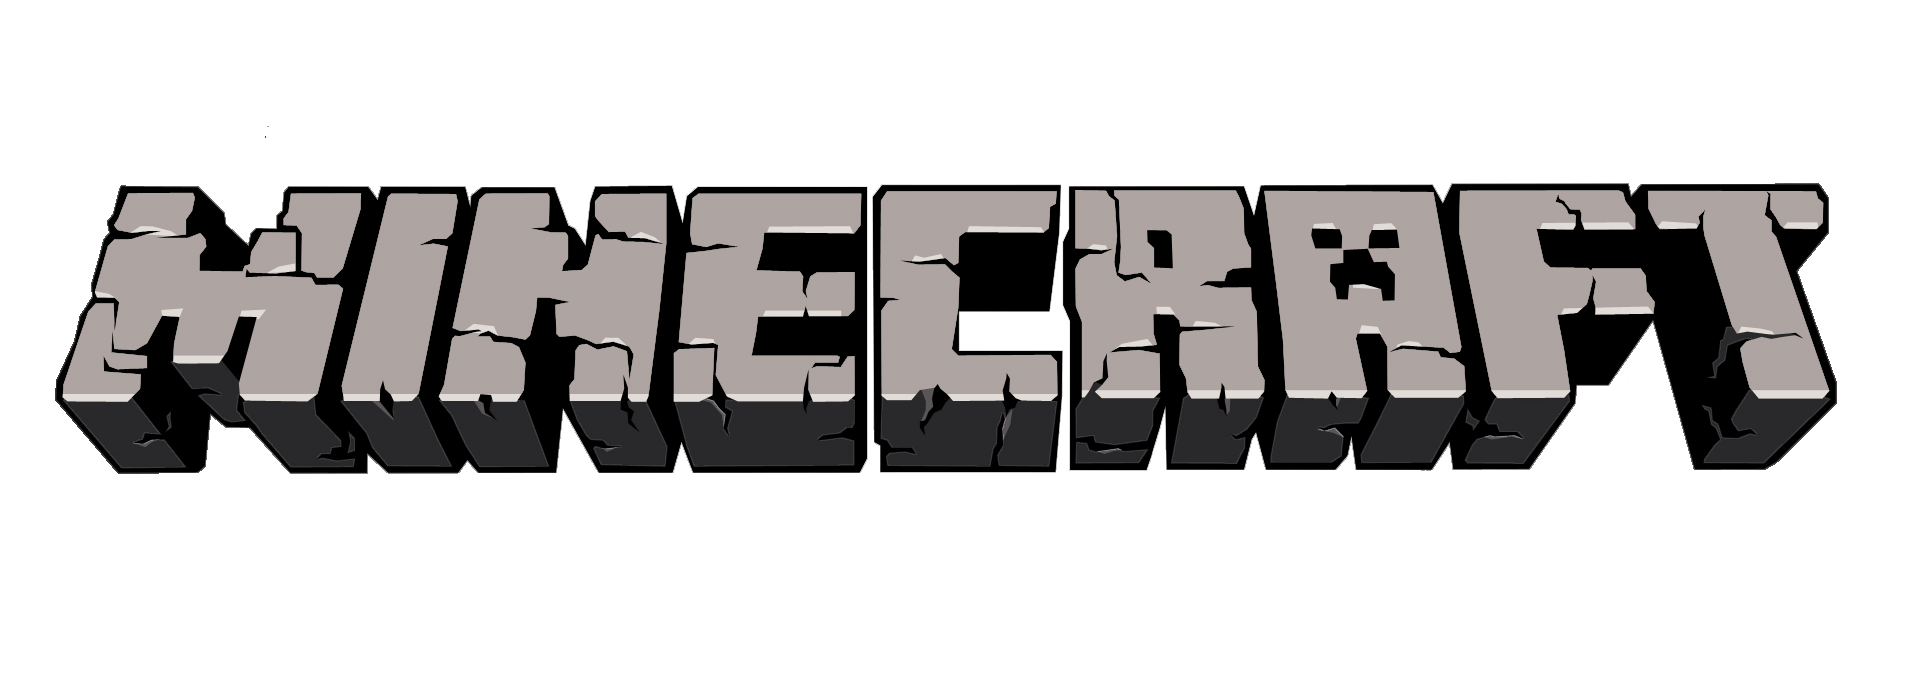 Minecraft HD PNG - 151585